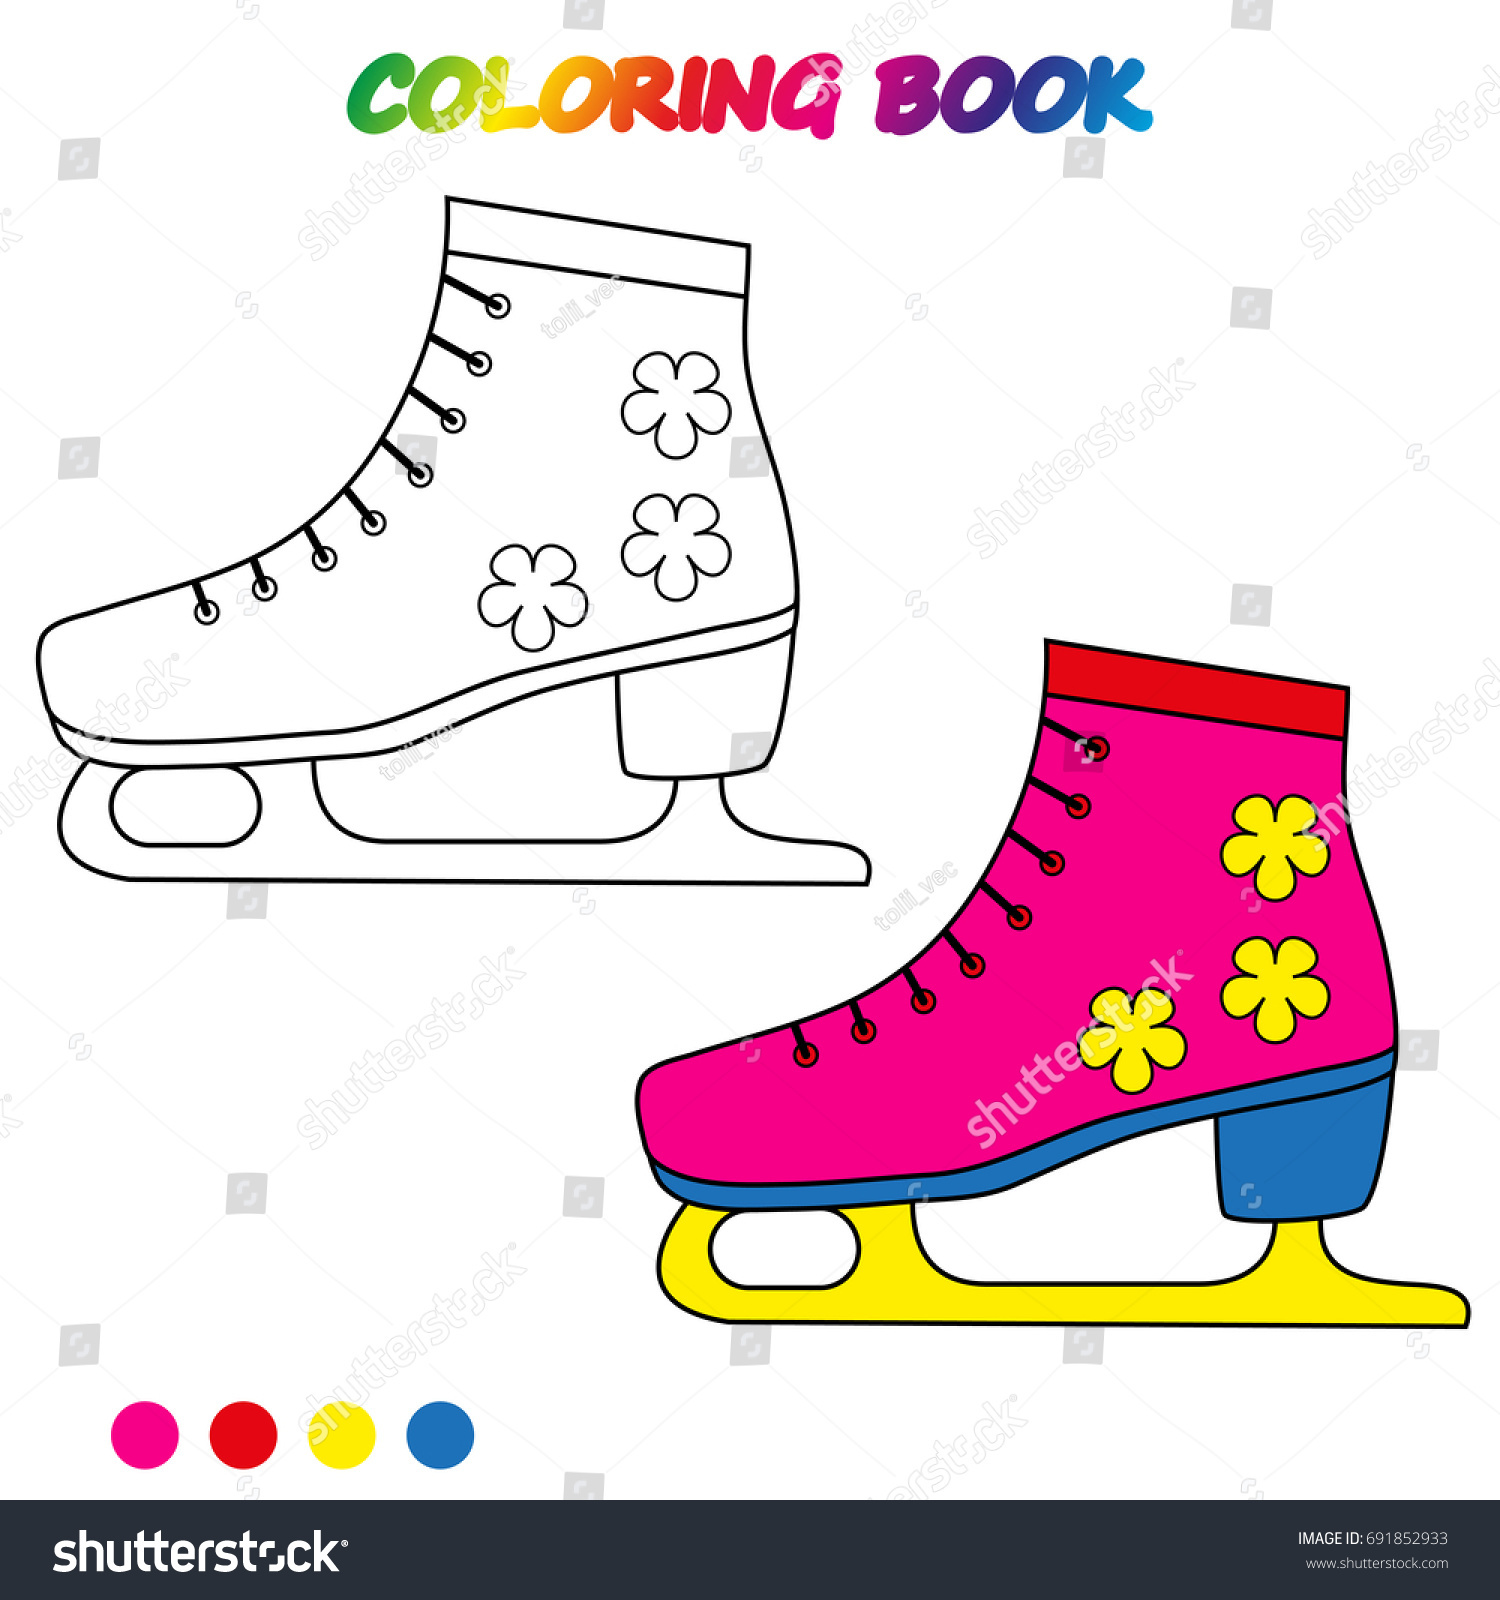 Ice Skates Coloring Page Worksheet Game Stock Vector